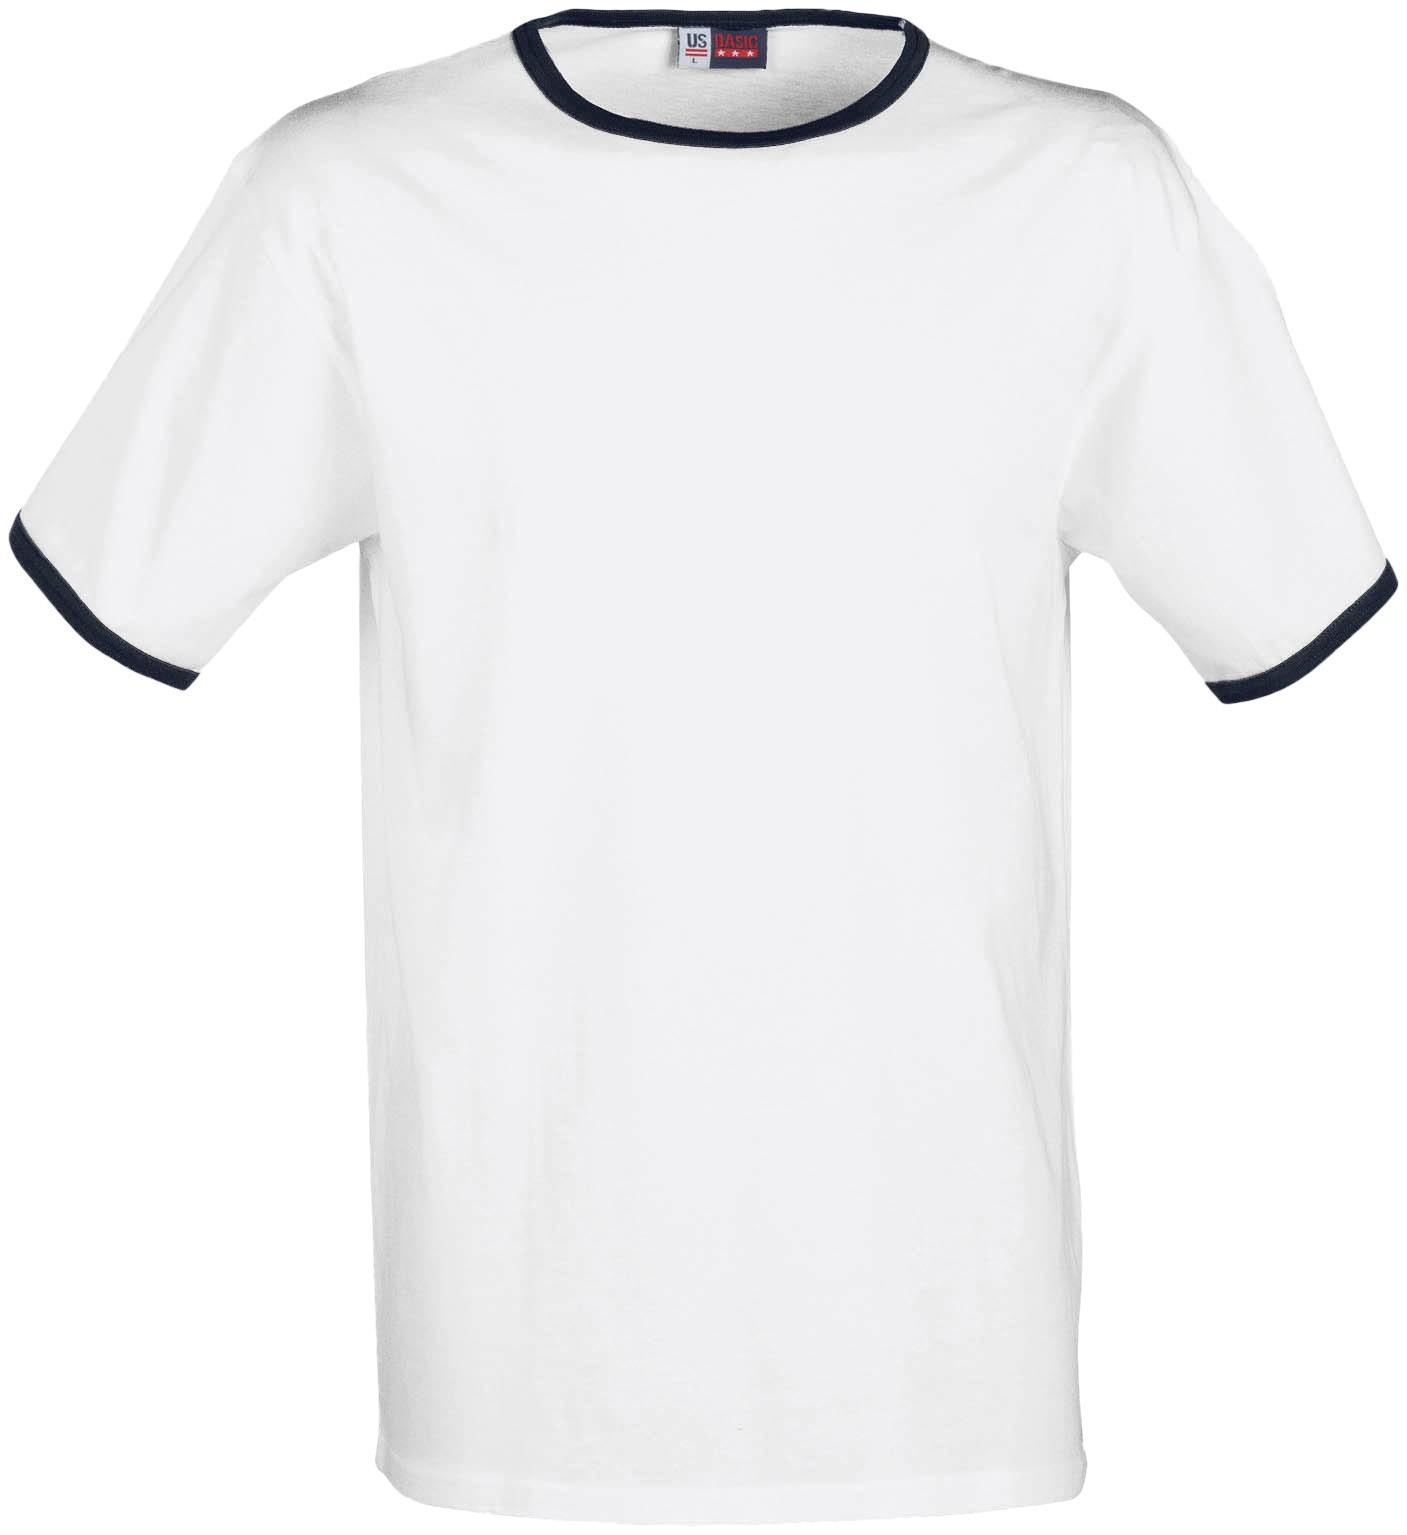 Mens Adelaide Contrast T-shirt - Wn Only